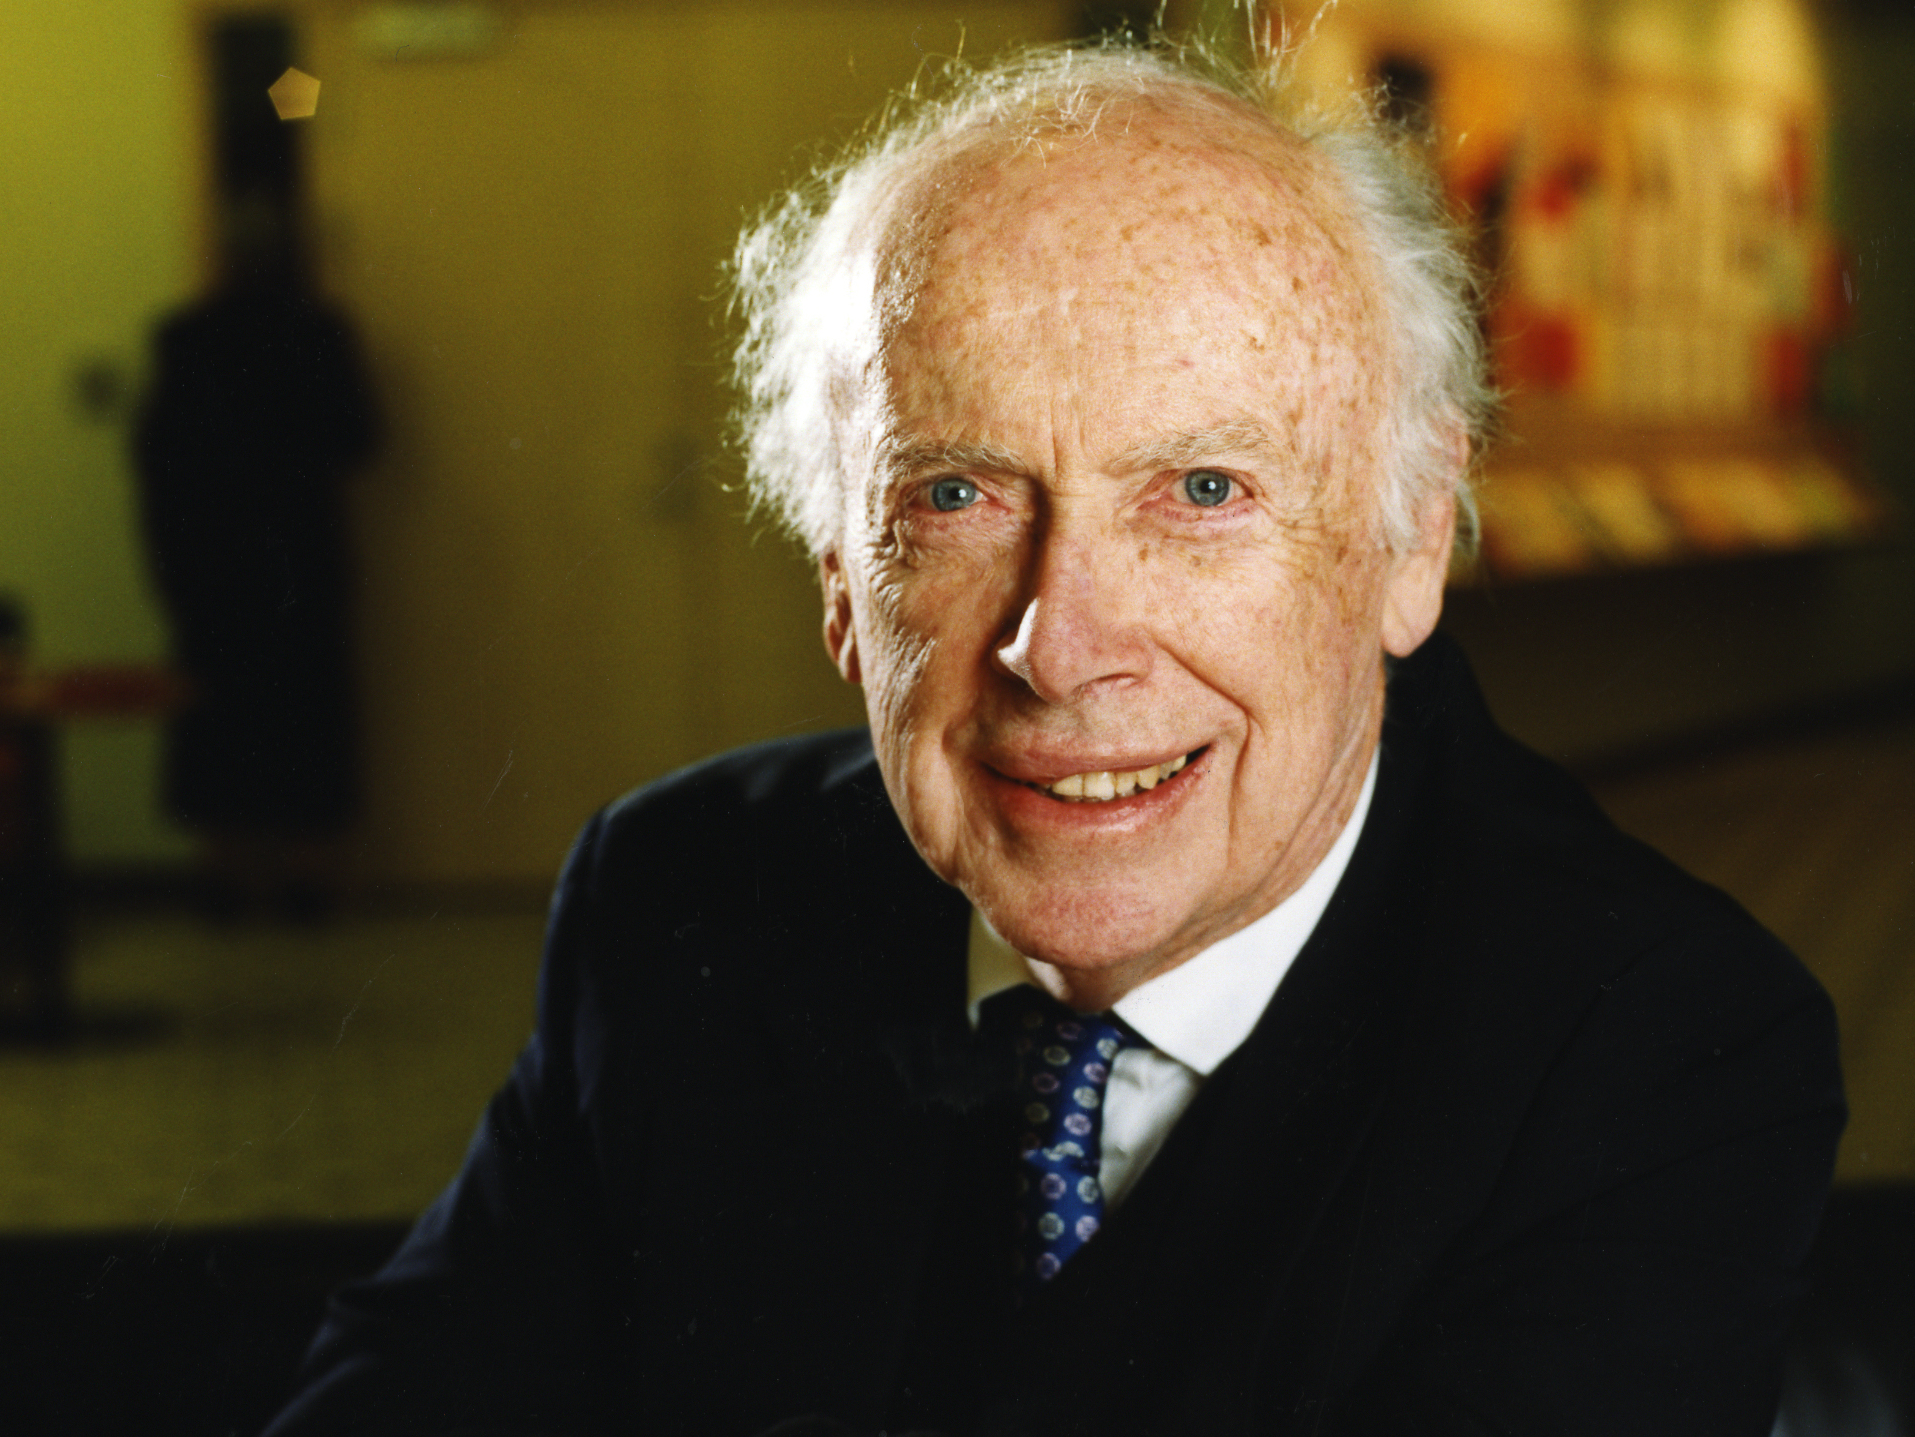 James Watson Puts His Nobel Prize Up For Auction The Bottom Line